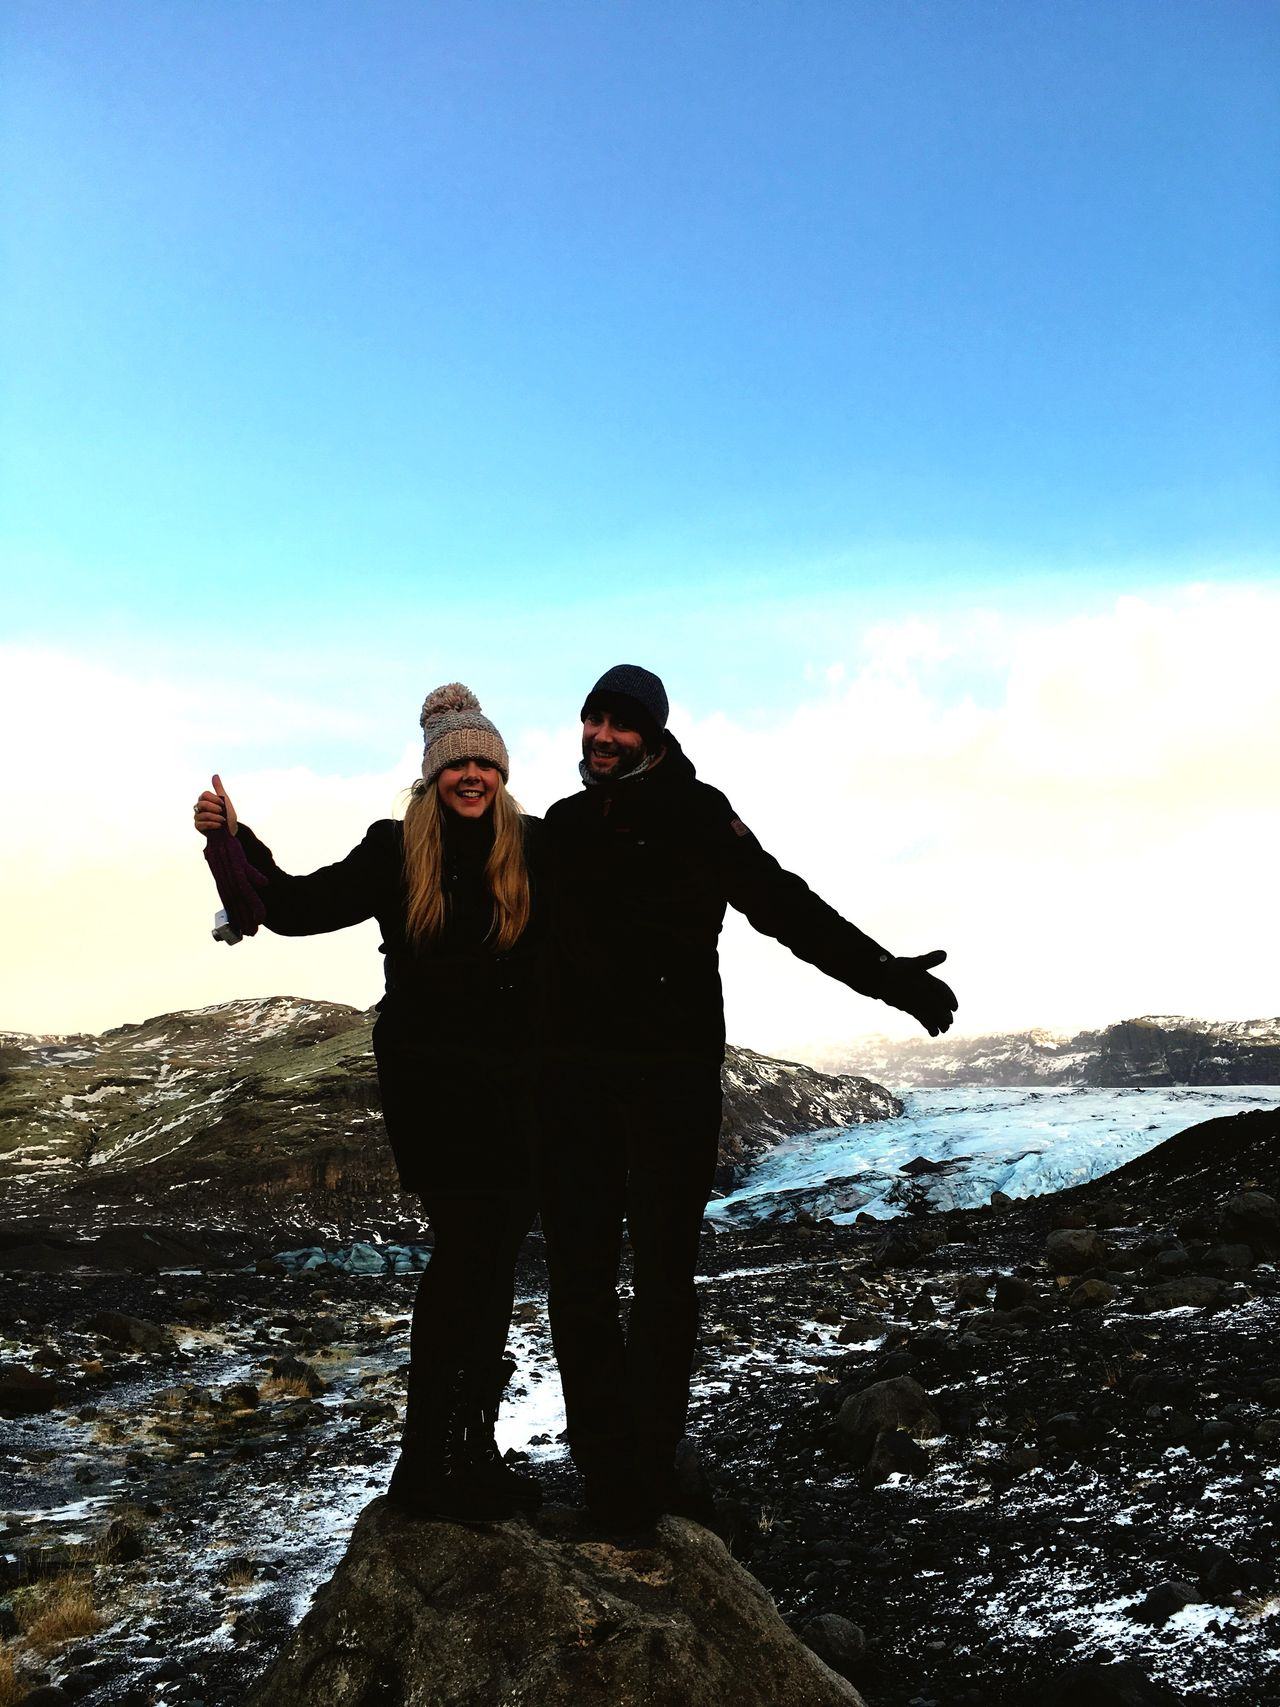 Two People Sky Standing Sea Real People Togetherness Iceland Trip Iceland Glaciers Iceland_collection Looking At Camera Leisure Activity Men Nature Arms Outstretched Lifestyles Outdoors Scenics Full Length Water Happiness Day Portrait